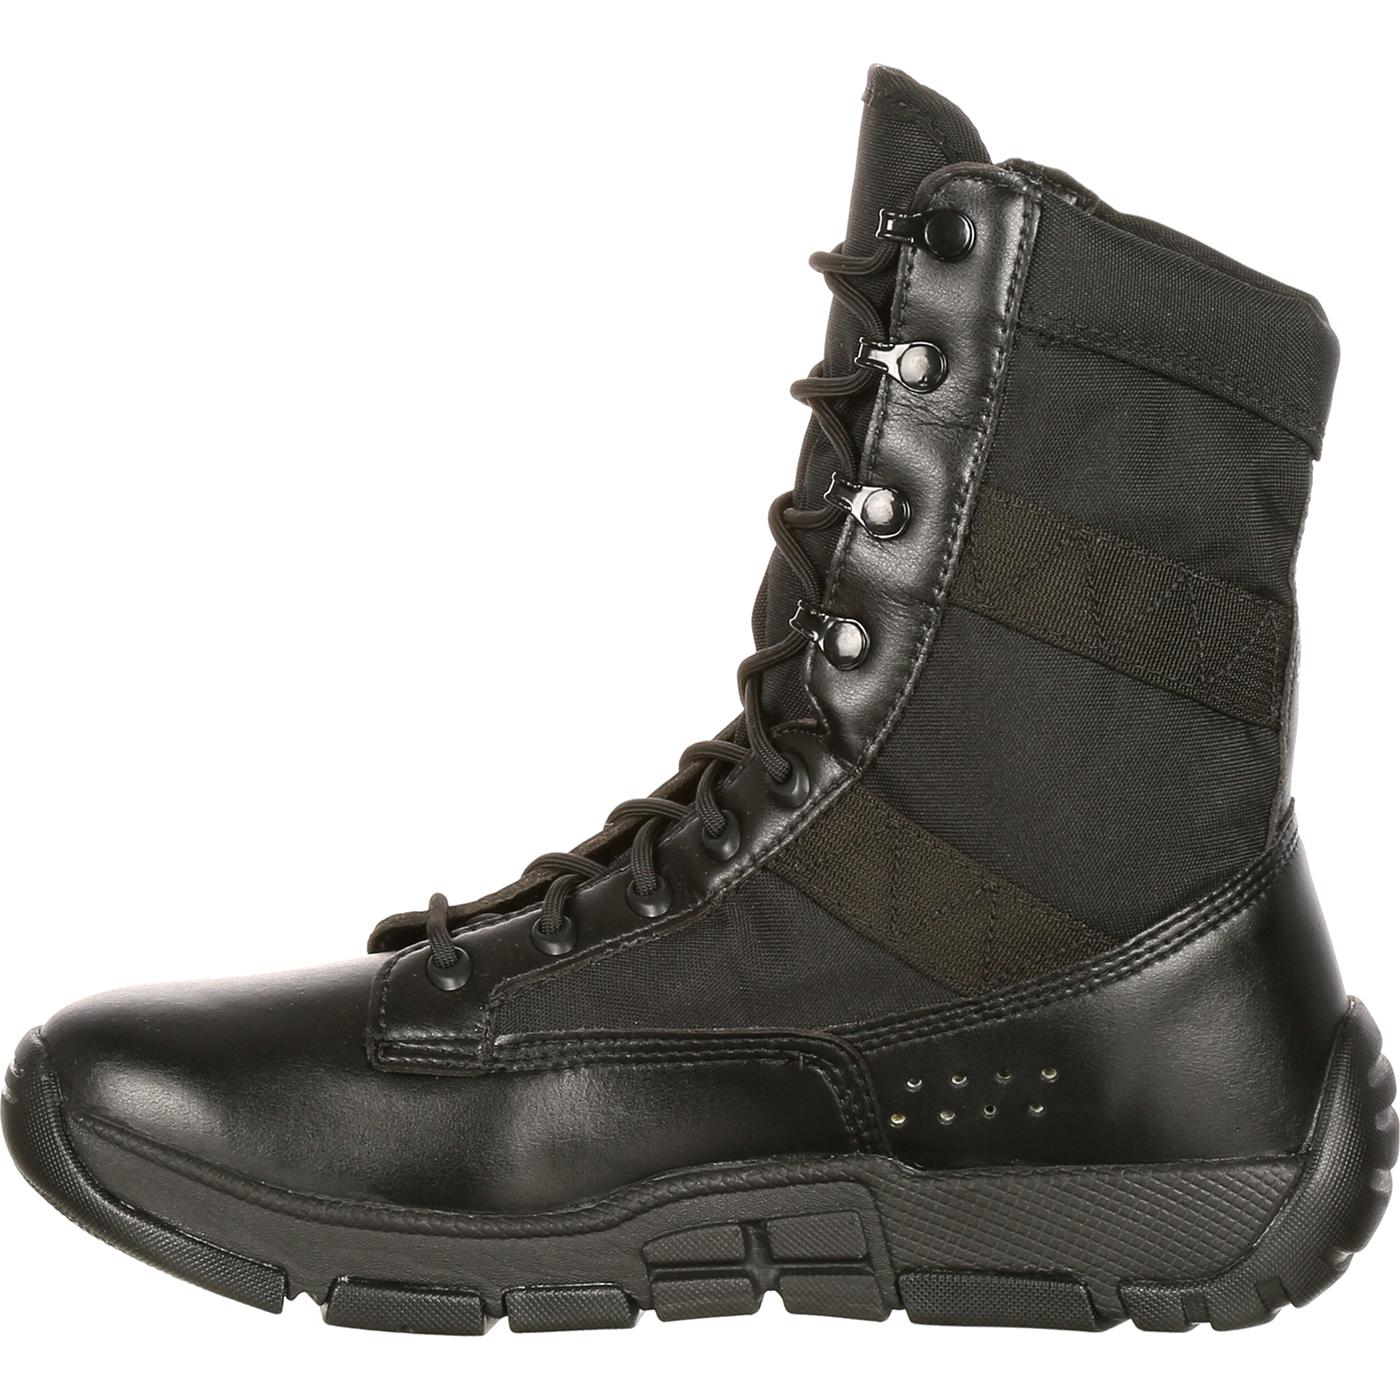 Rocky C4T - Men s Military Inspired Black Duty Boots d9c4fb57c8d0